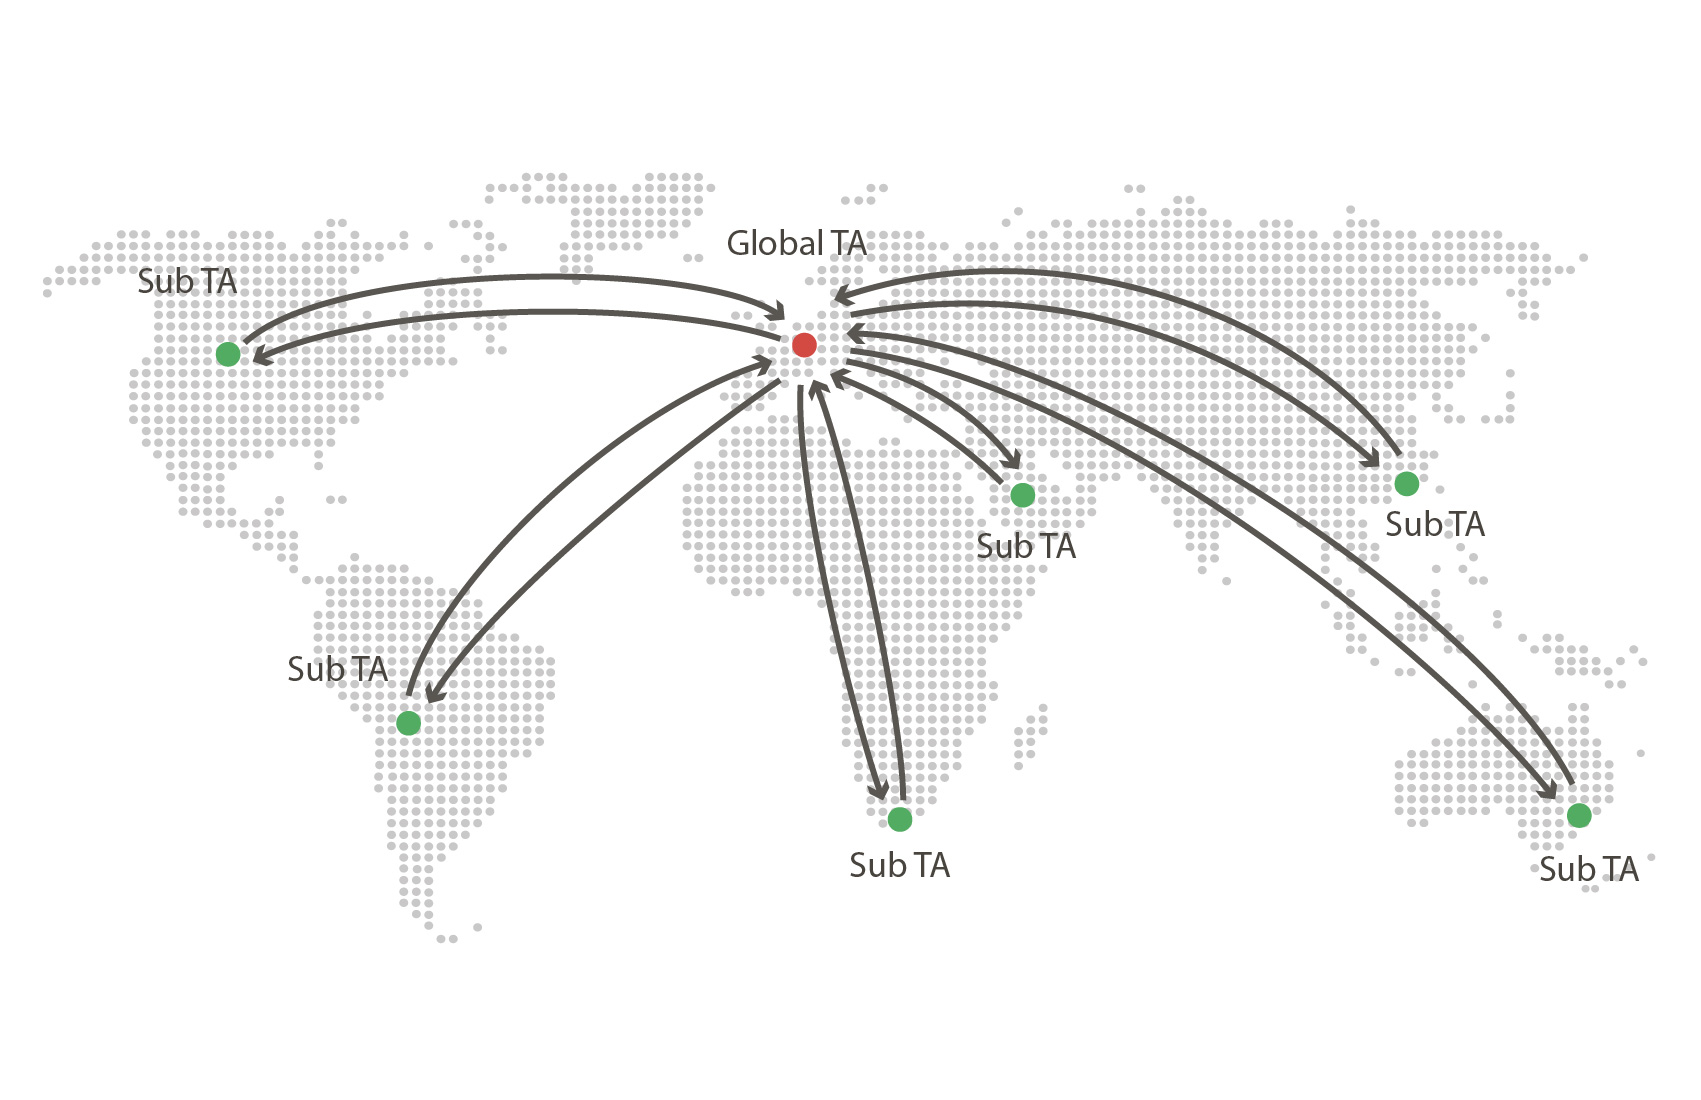 Map shows model in which an appointed agent manages sub-transfer agents in each market